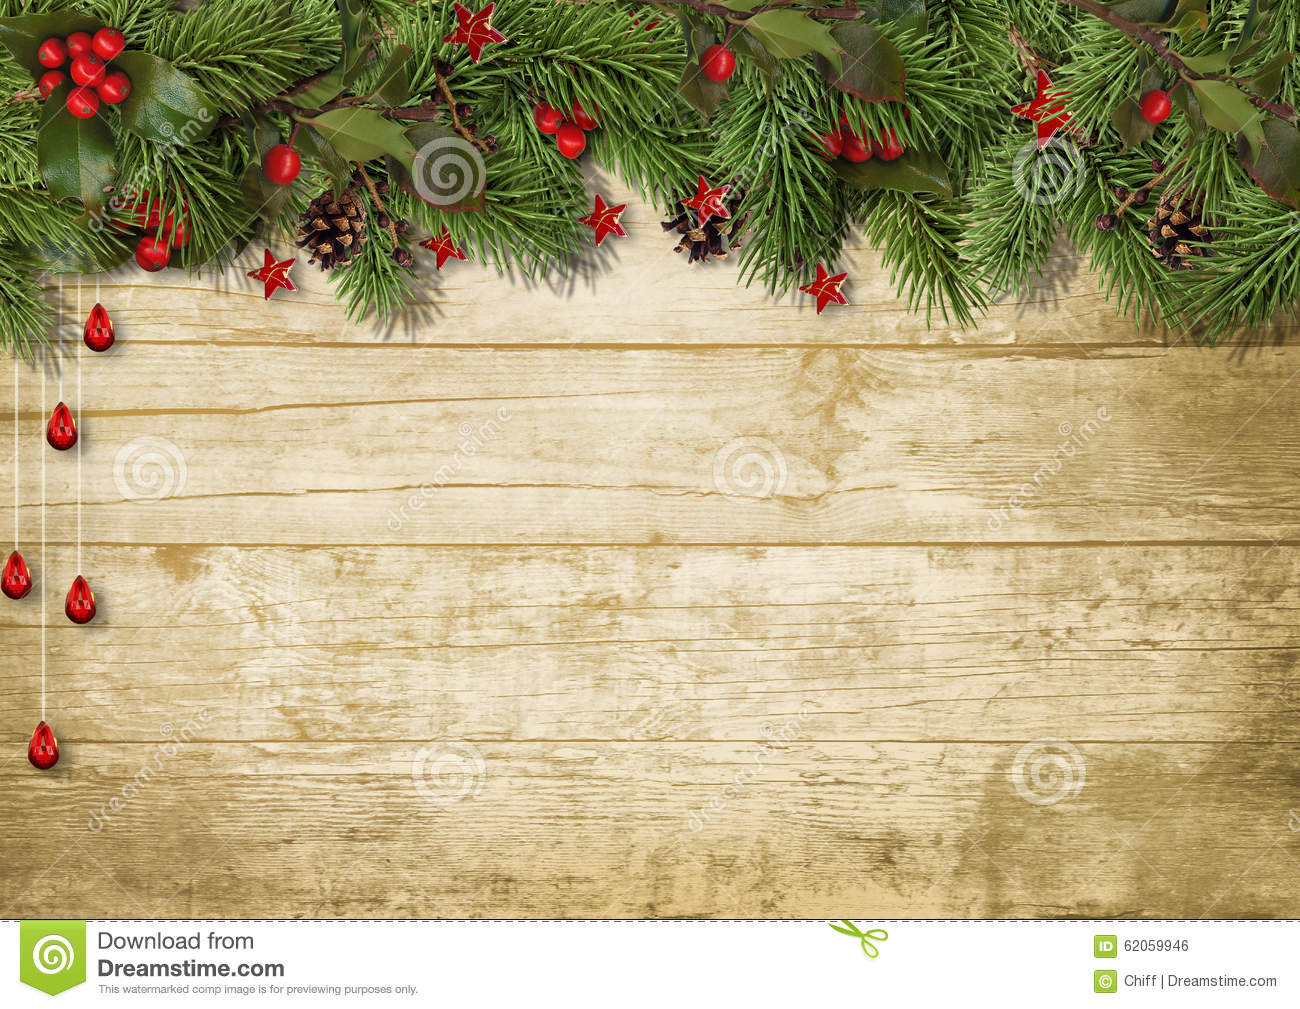 Best Wallpaper Christmas Wood - christmas-fir-branches-holly-wood-background-cones-decorations-wooden-space-photo-text-62059946  You Should Have_486535 .jpg